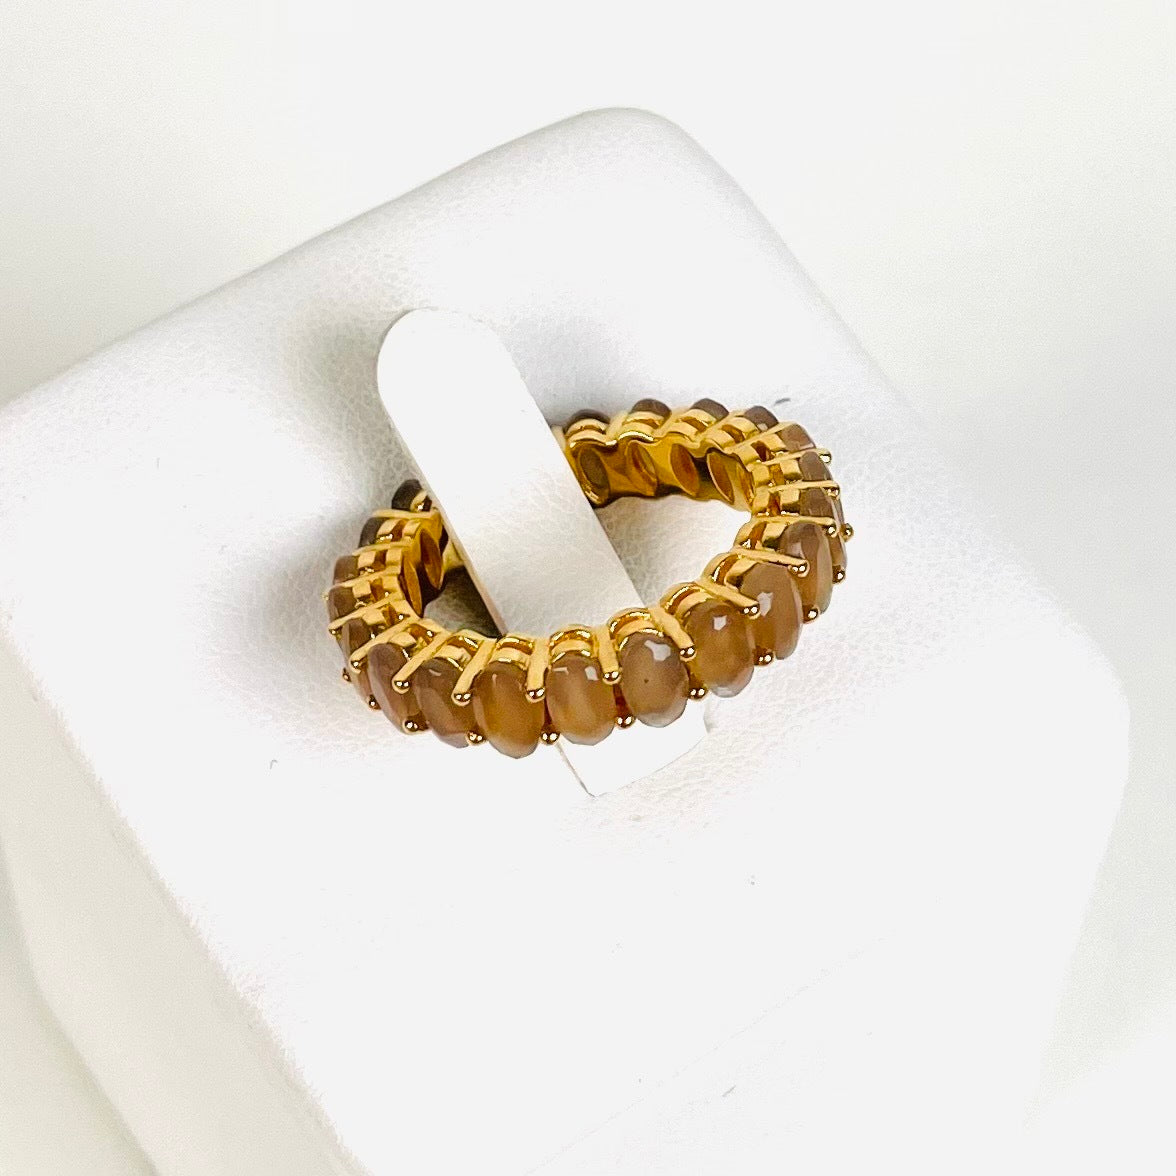 TWIN DRAGON JADE - Mystery Art Piece Custom Made by Eric Ruyak